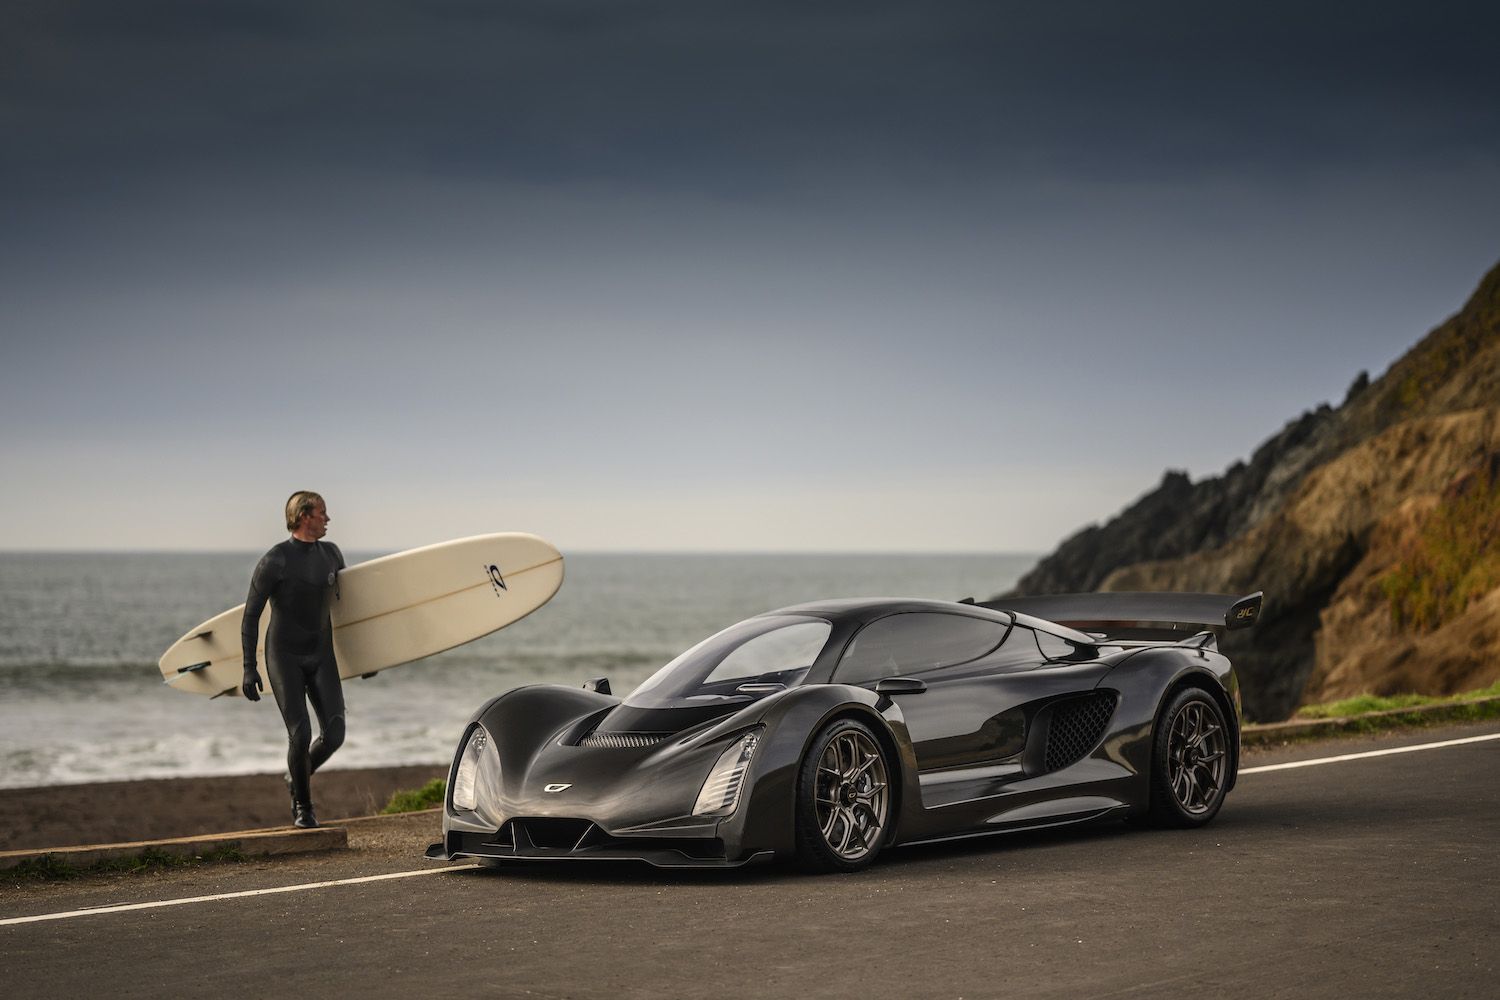 Czinger 21C 3D print hybrid supercar front three-quarter and surfer on pacific coast highway